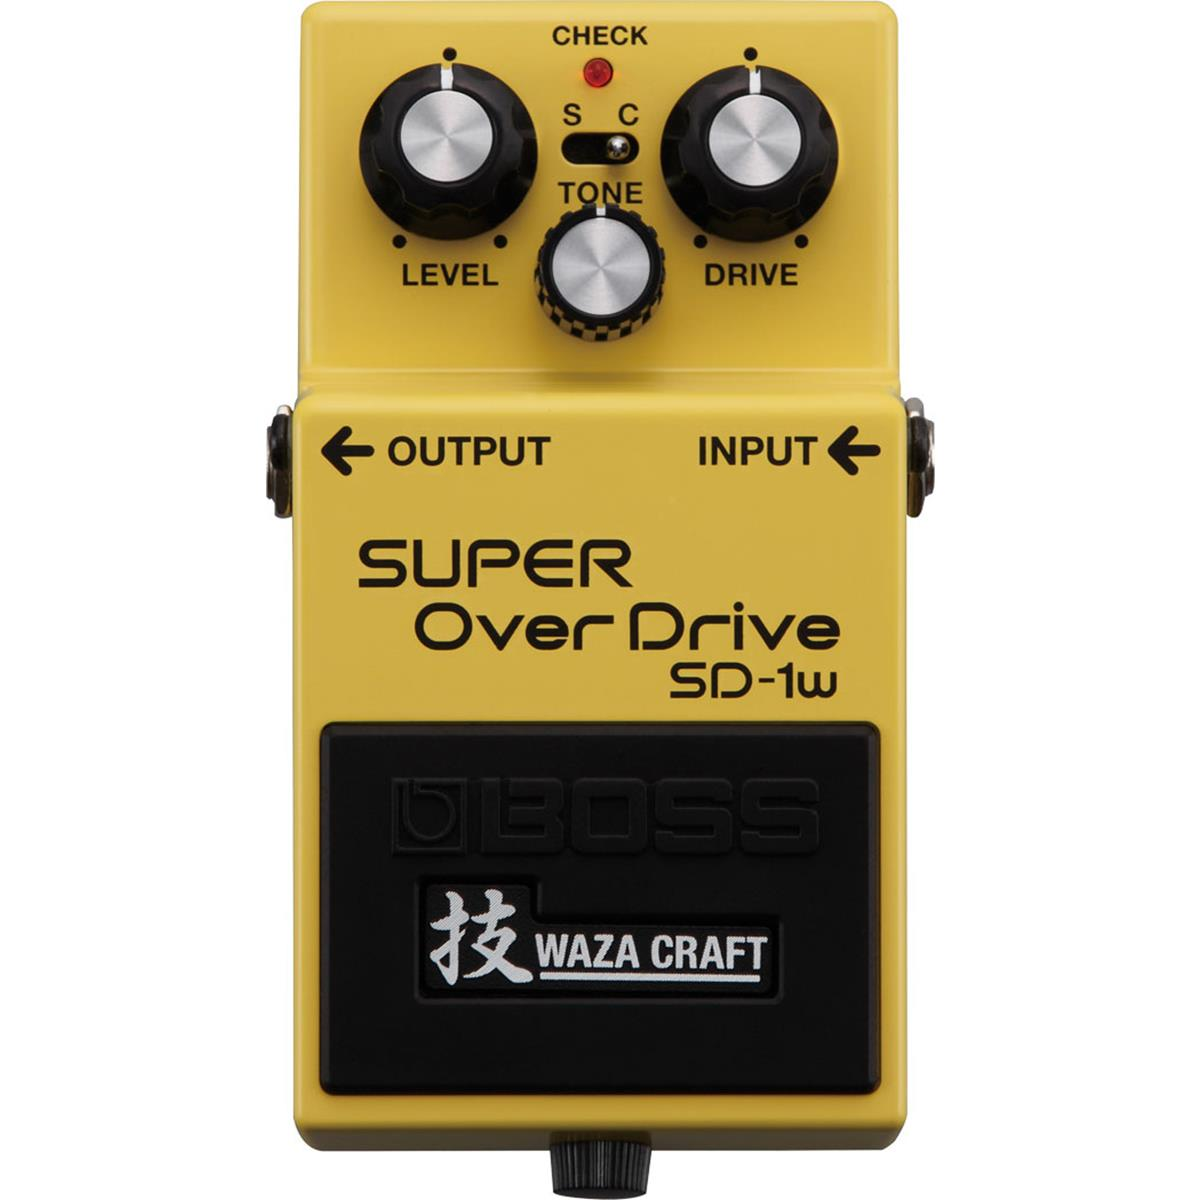 BOSS-SD-1W-SUPER-OVERDRIVE-WAZA-CRAFT-sku-14027